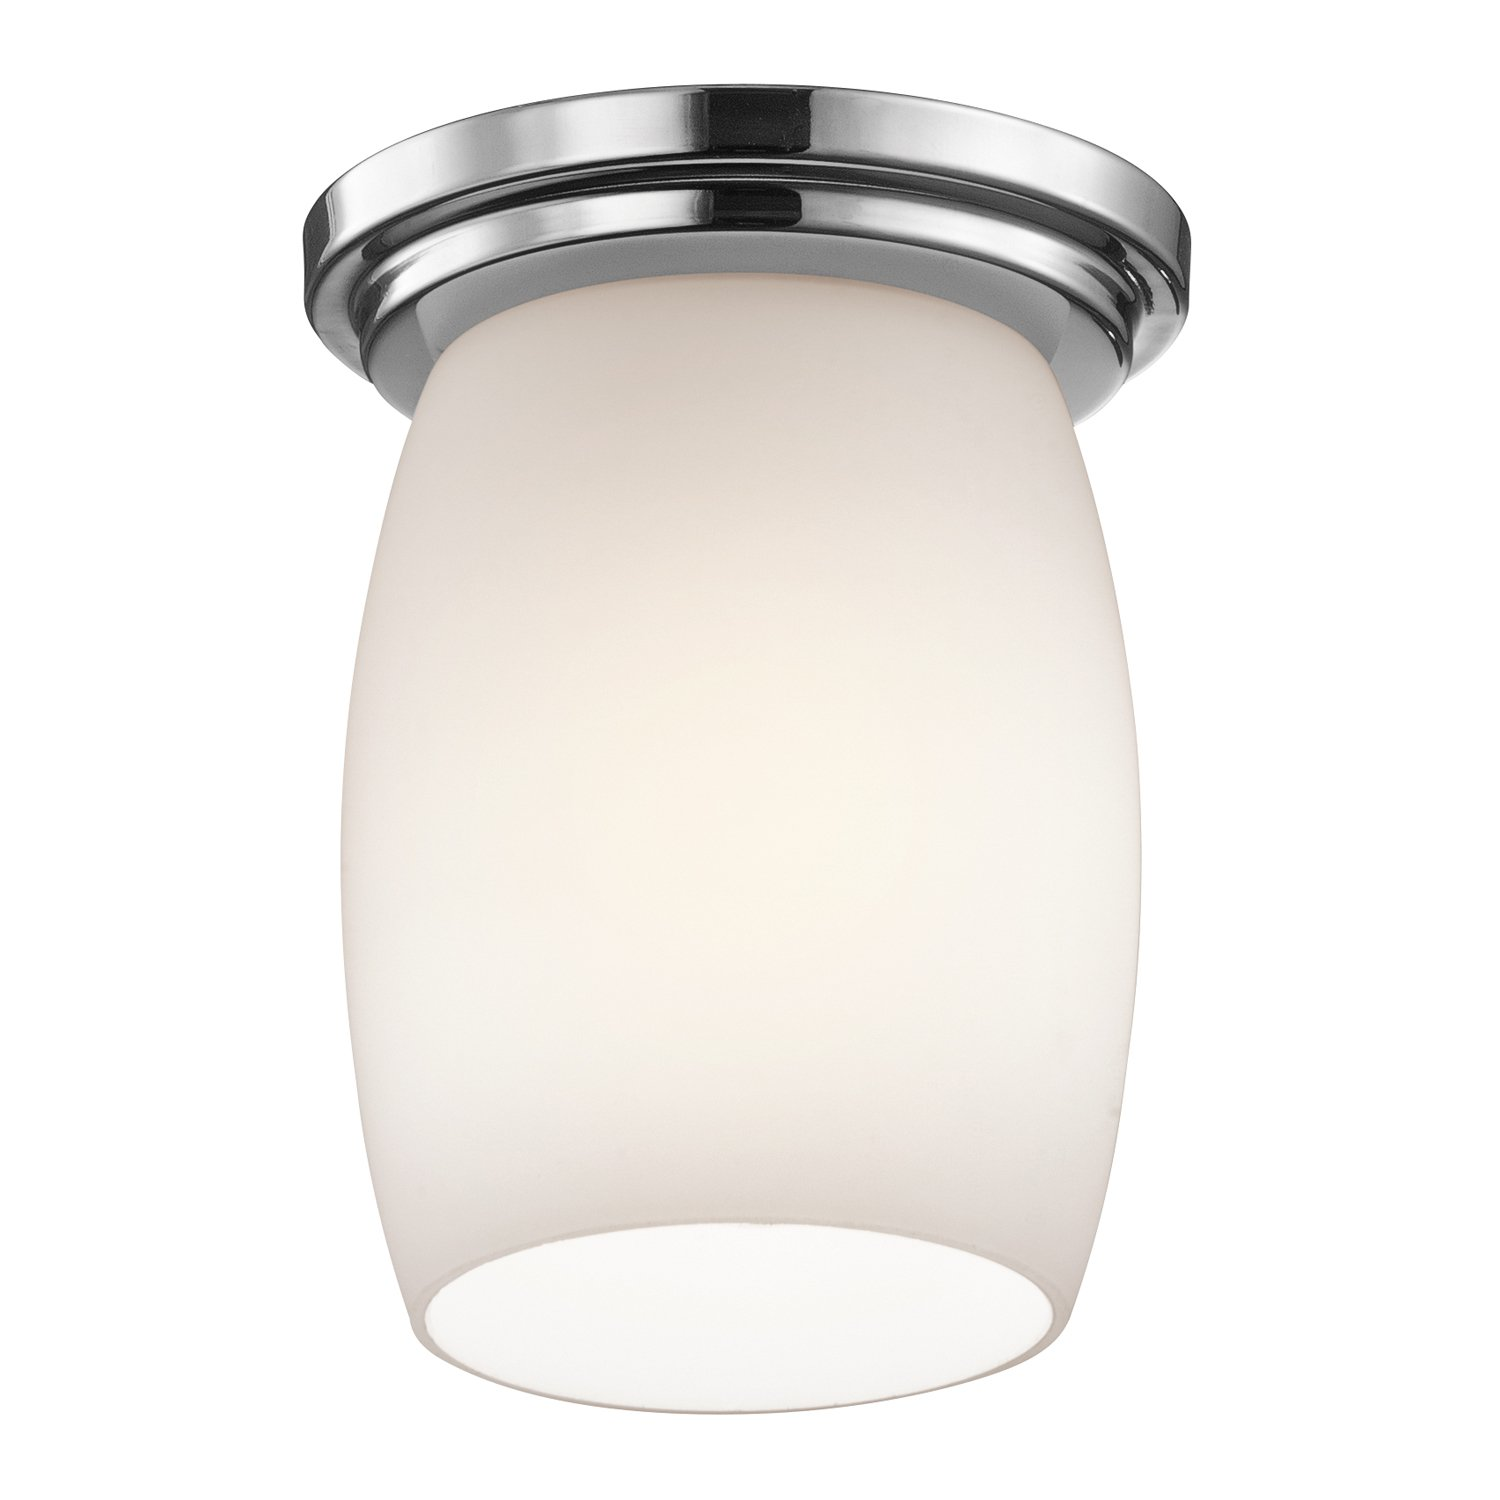 max ceiling with light led white nature flush finish acrylic modern ceilings products brand mount unitary chrome